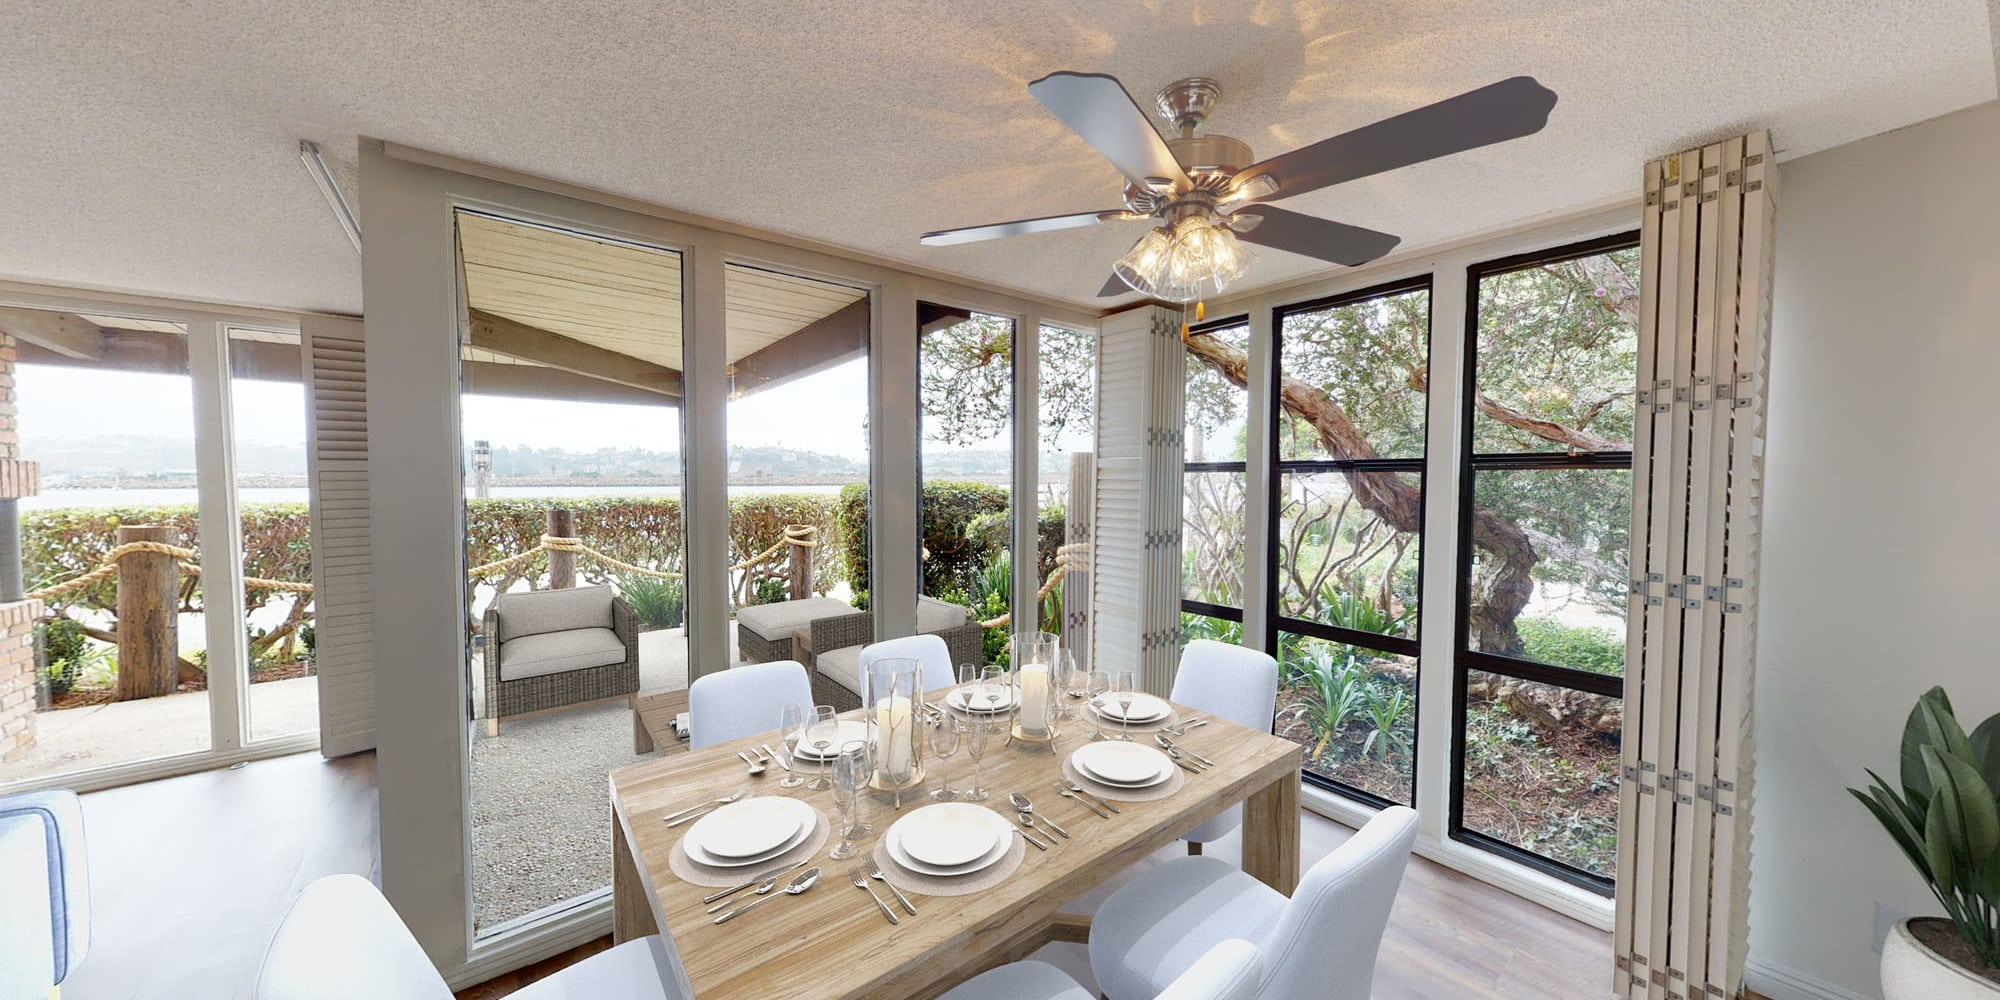 Spacious three-bedroom home's dining area at Mariners Village in Marina del Rey, California